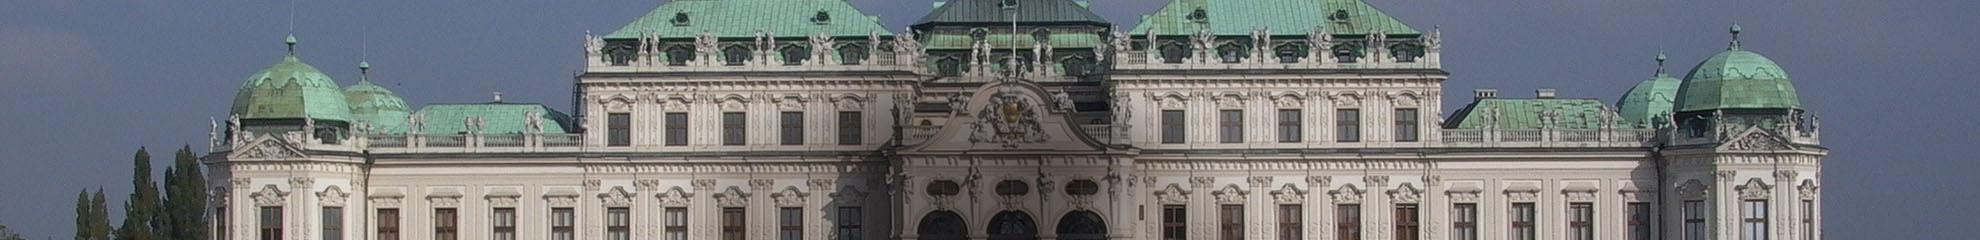 /thumb.php?thumb=%2Fuploadedfiles%2Fmedia%2F2016%2Fhome%2Fbanners+down%2Fvienna_schloss_belvedere_1980x330_75.jpg